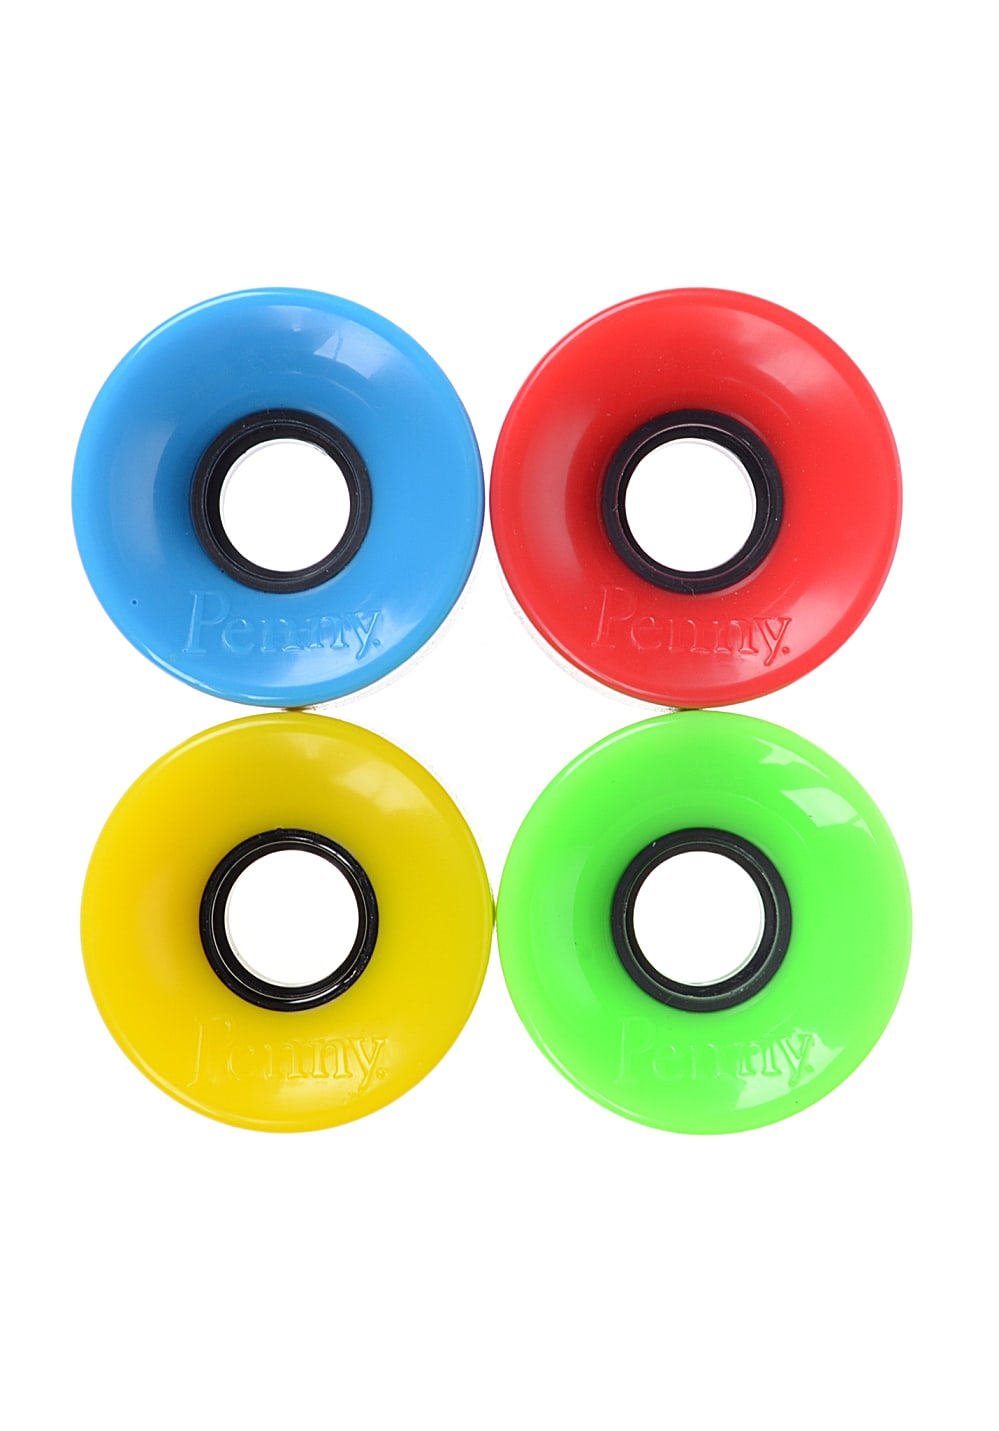 Planet Sports | PENNY Mixed Set 83A 59mm Skate Rollen – Mehrfarbig